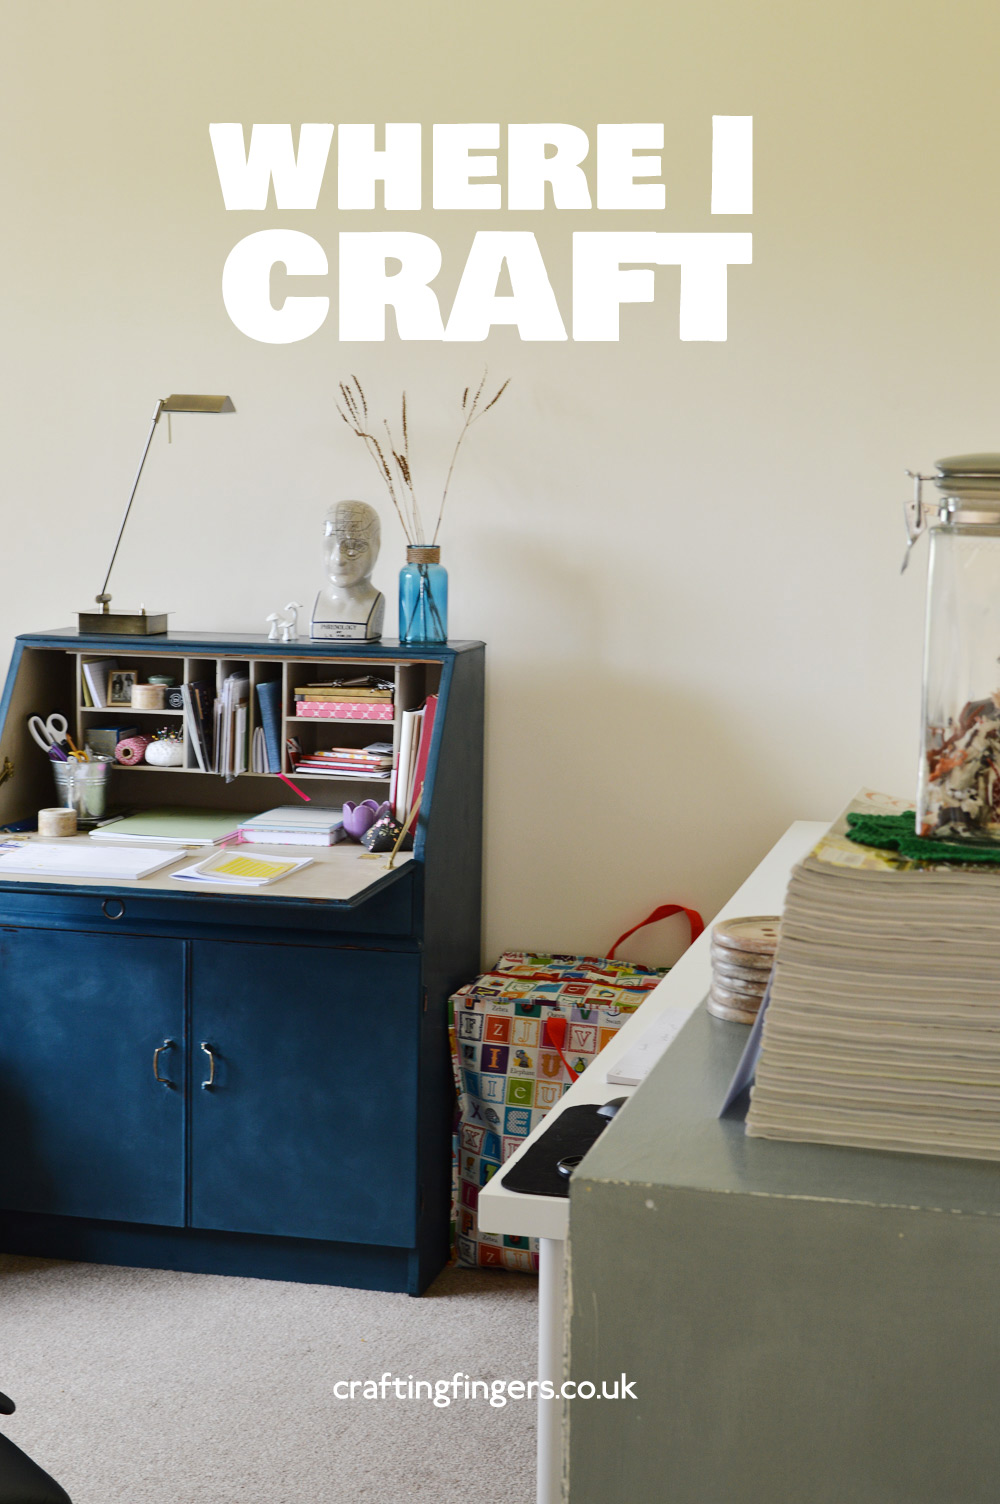 My craft room | Crafting Fingers